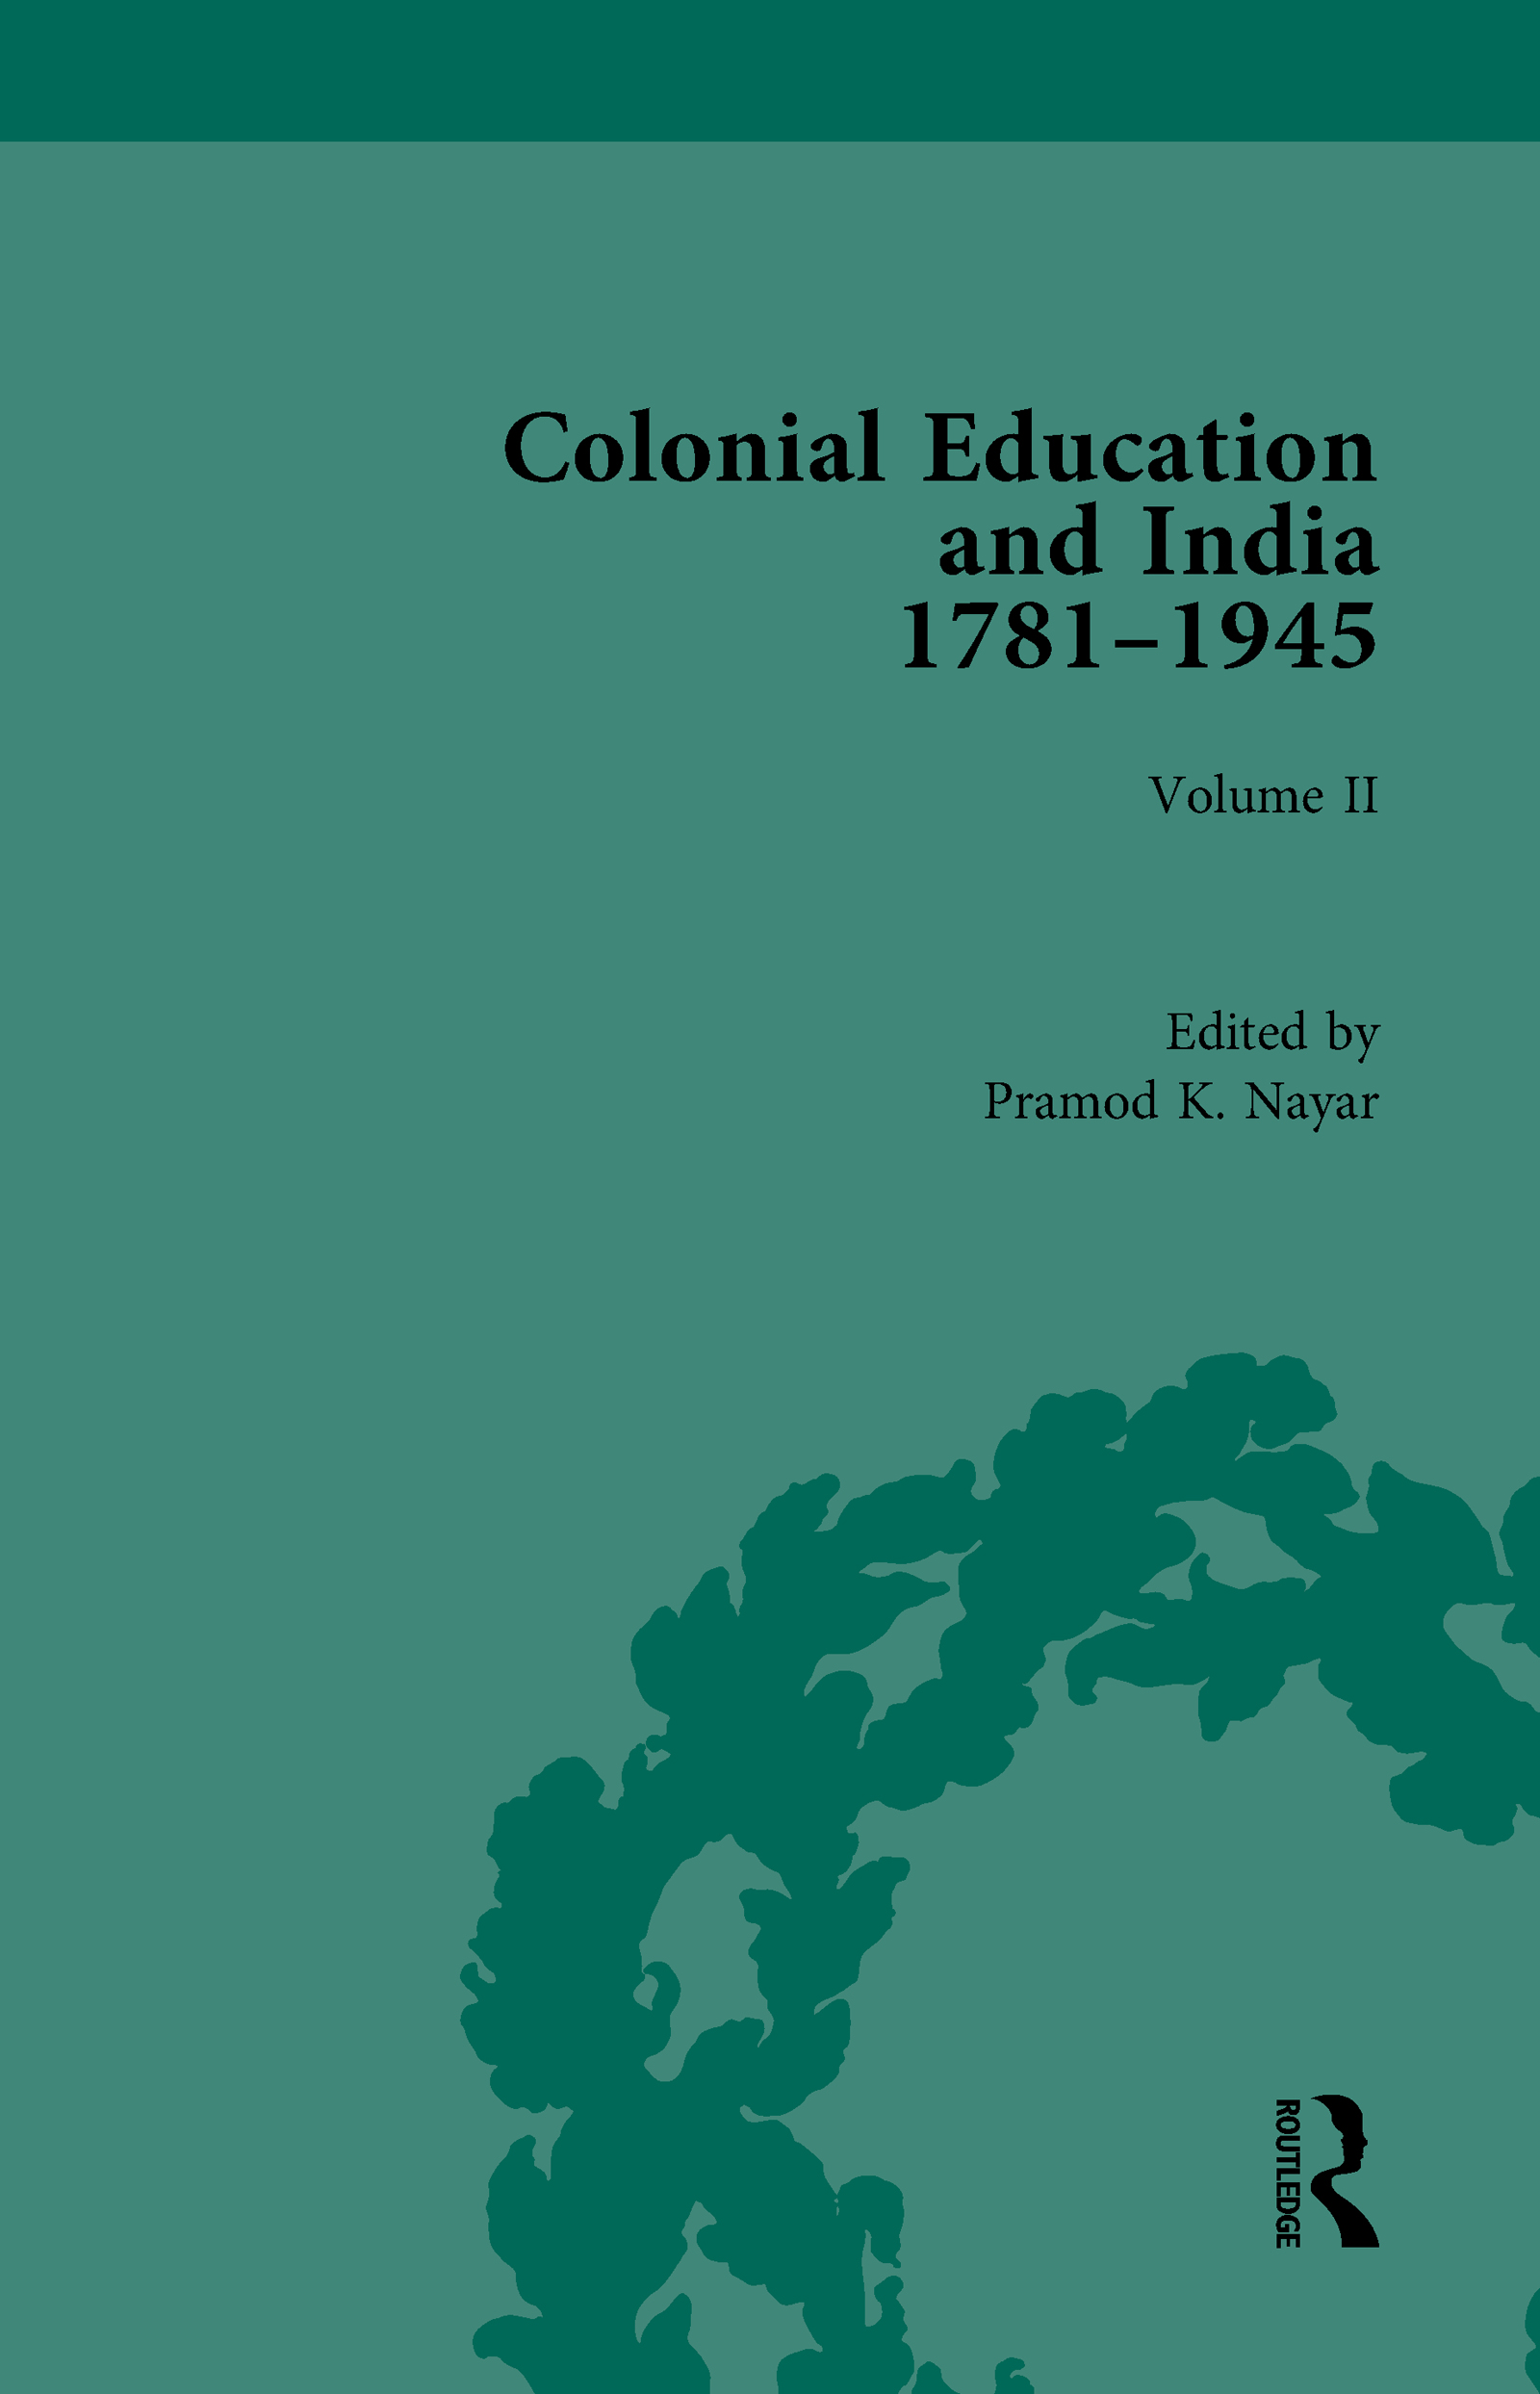 Colonial Education and India 1781-1945: Volume II book cover